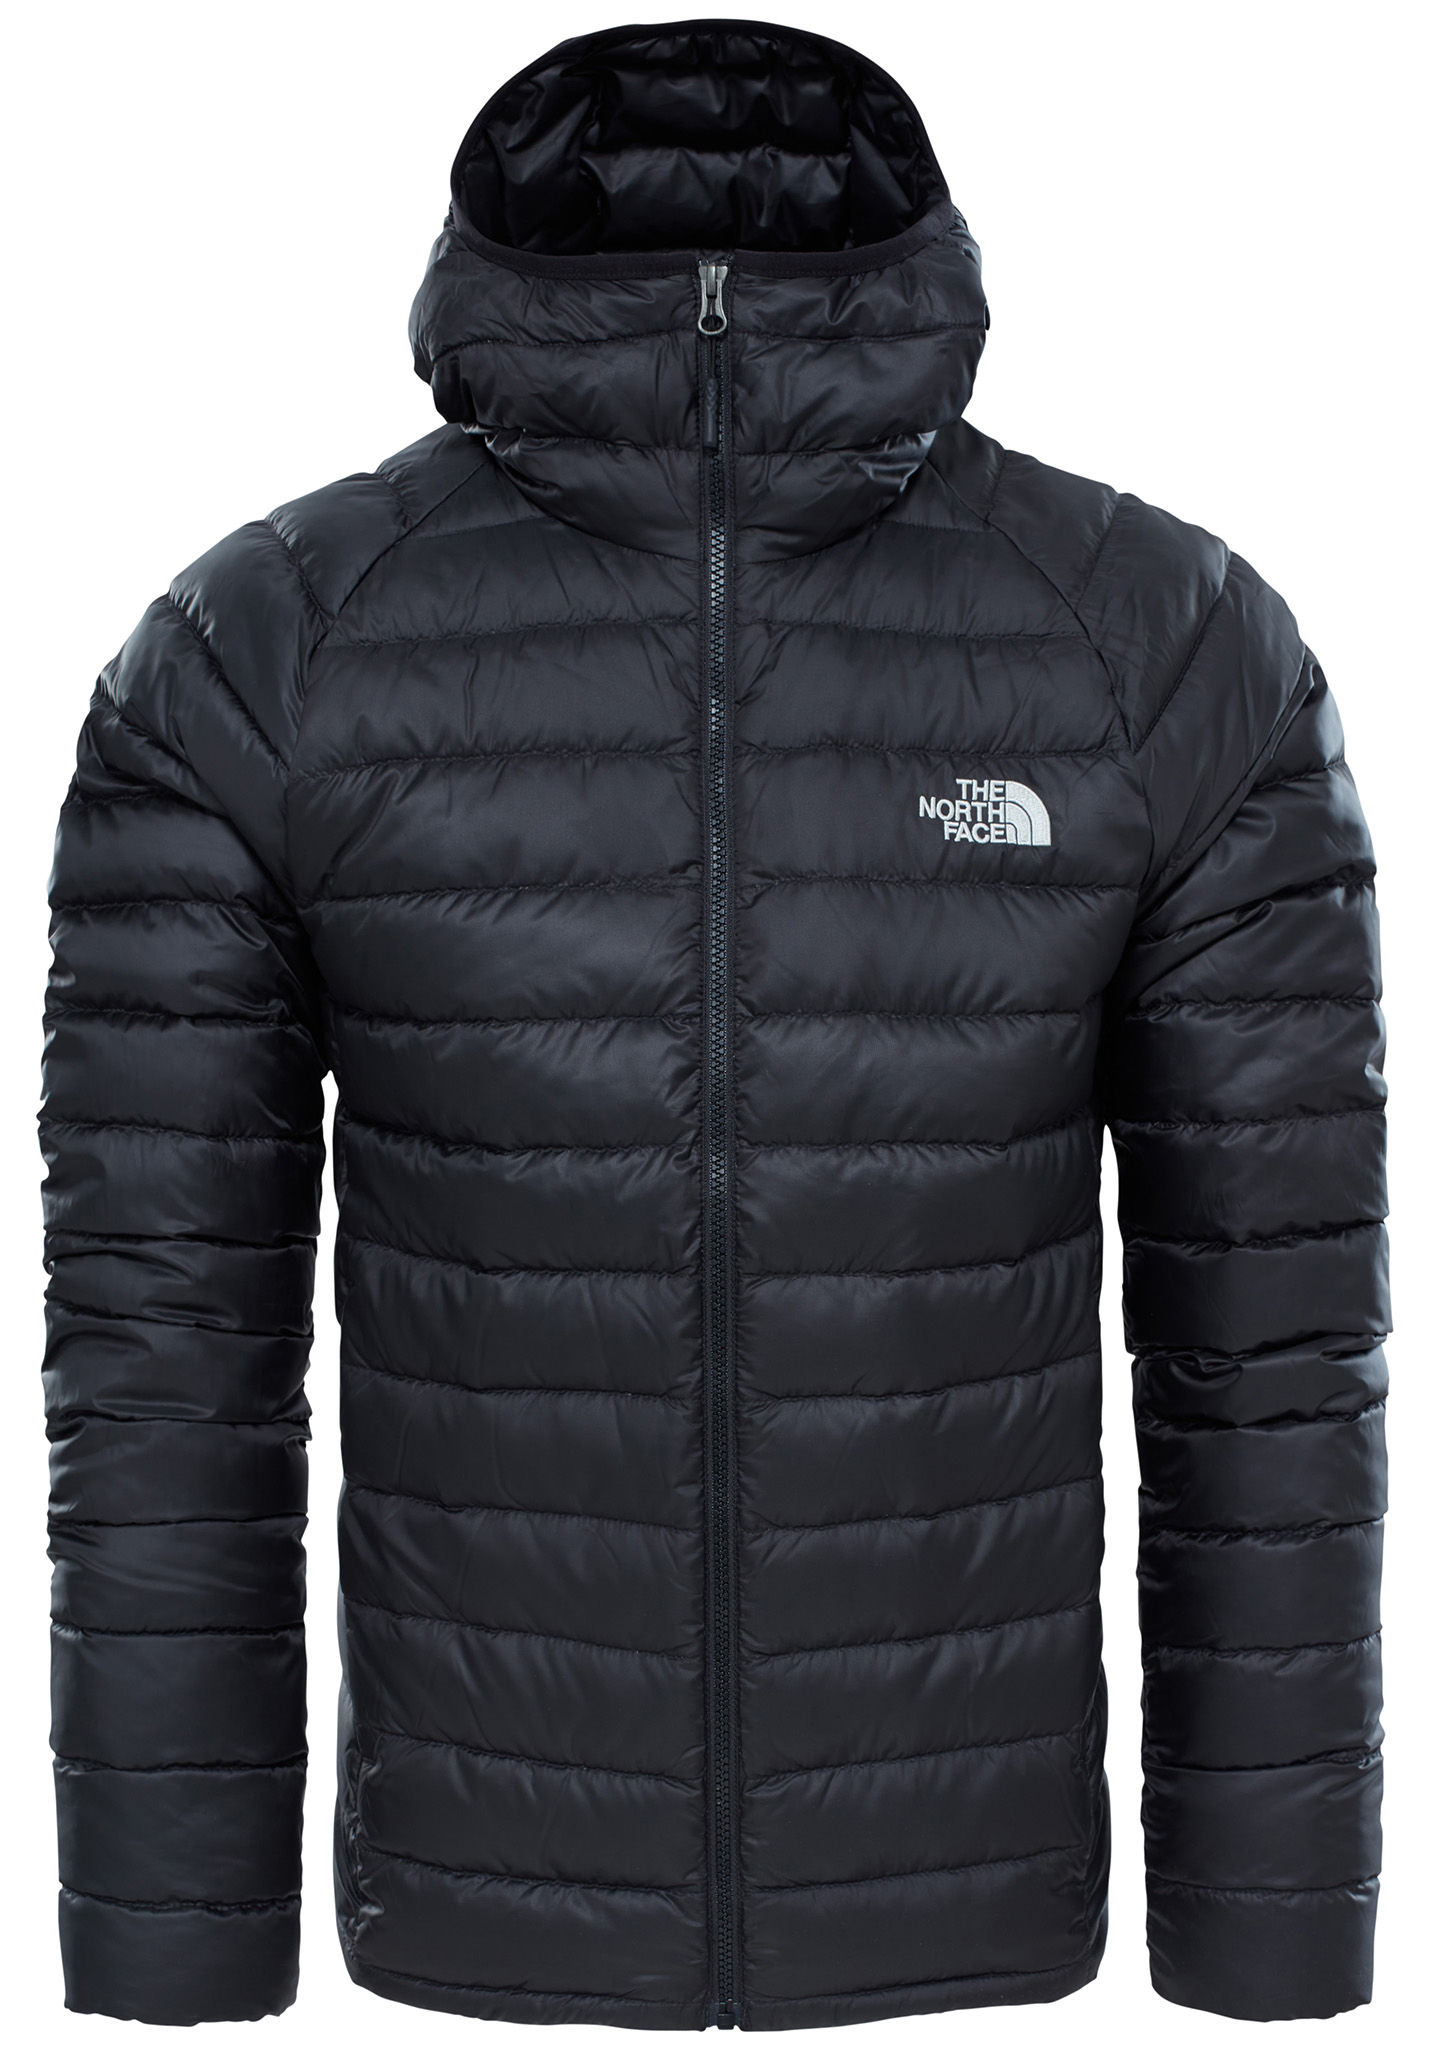 THE NORTH FACE Trevail - Outdoor Jacket for Men - Black - Planet Sports 05b0b1a19ed0